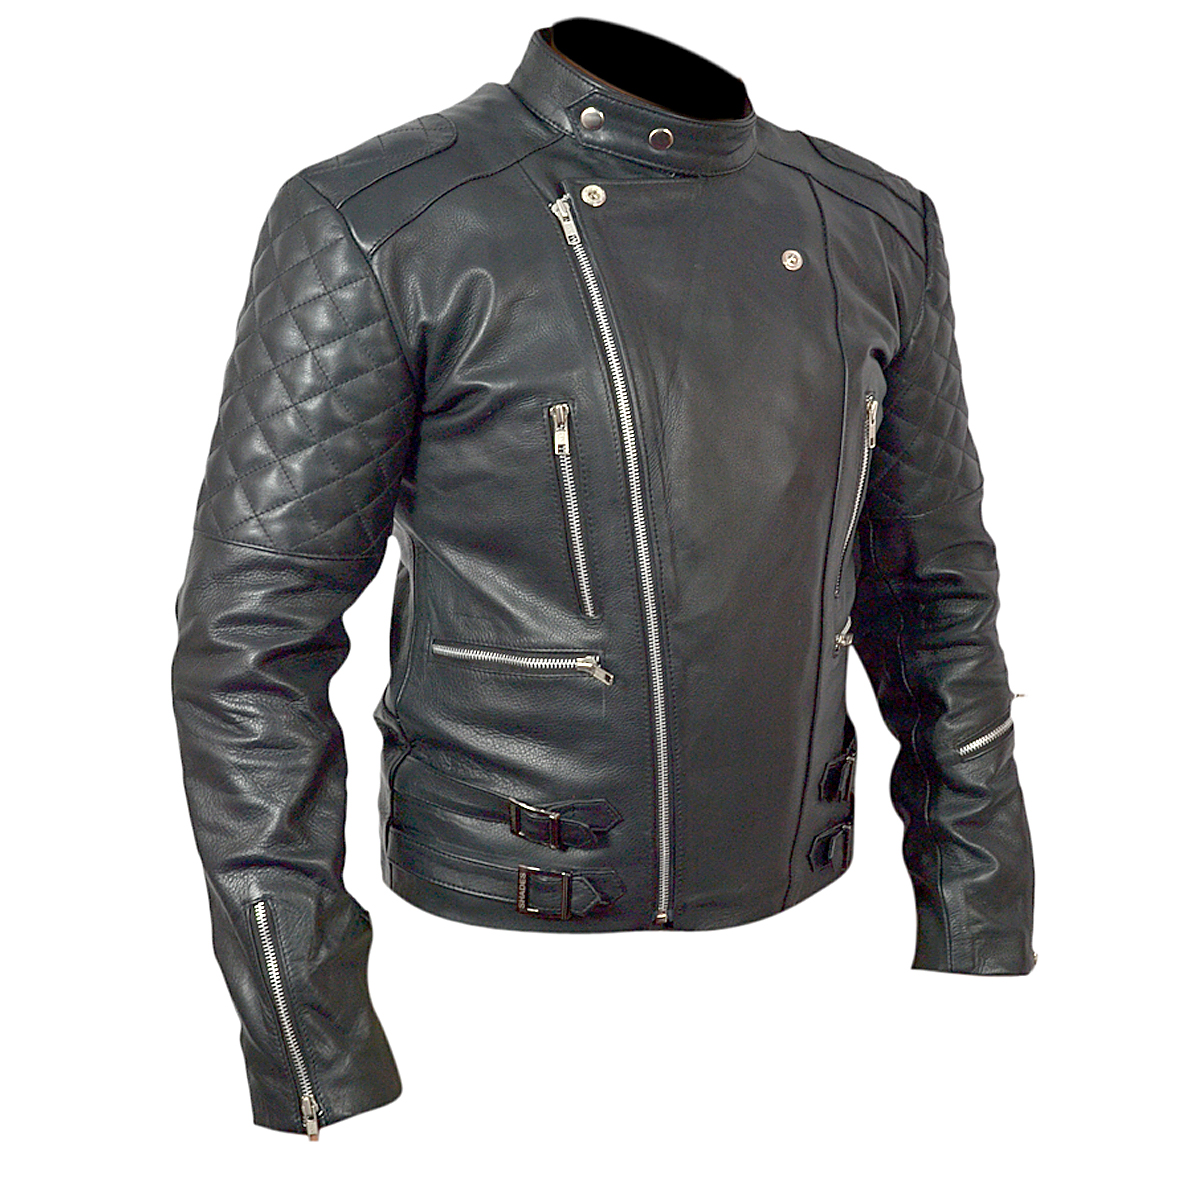 Jackets: Free Shipping on orders over $45 at lidarwindtechnolog.ga - Your Online Jackets Store! Get 5% in rewards with Club O! Mason & Cooper Men's Leather Jacket. 7 Reviews. Quick View SALE. More Options. Quick View. See Price in Cart.